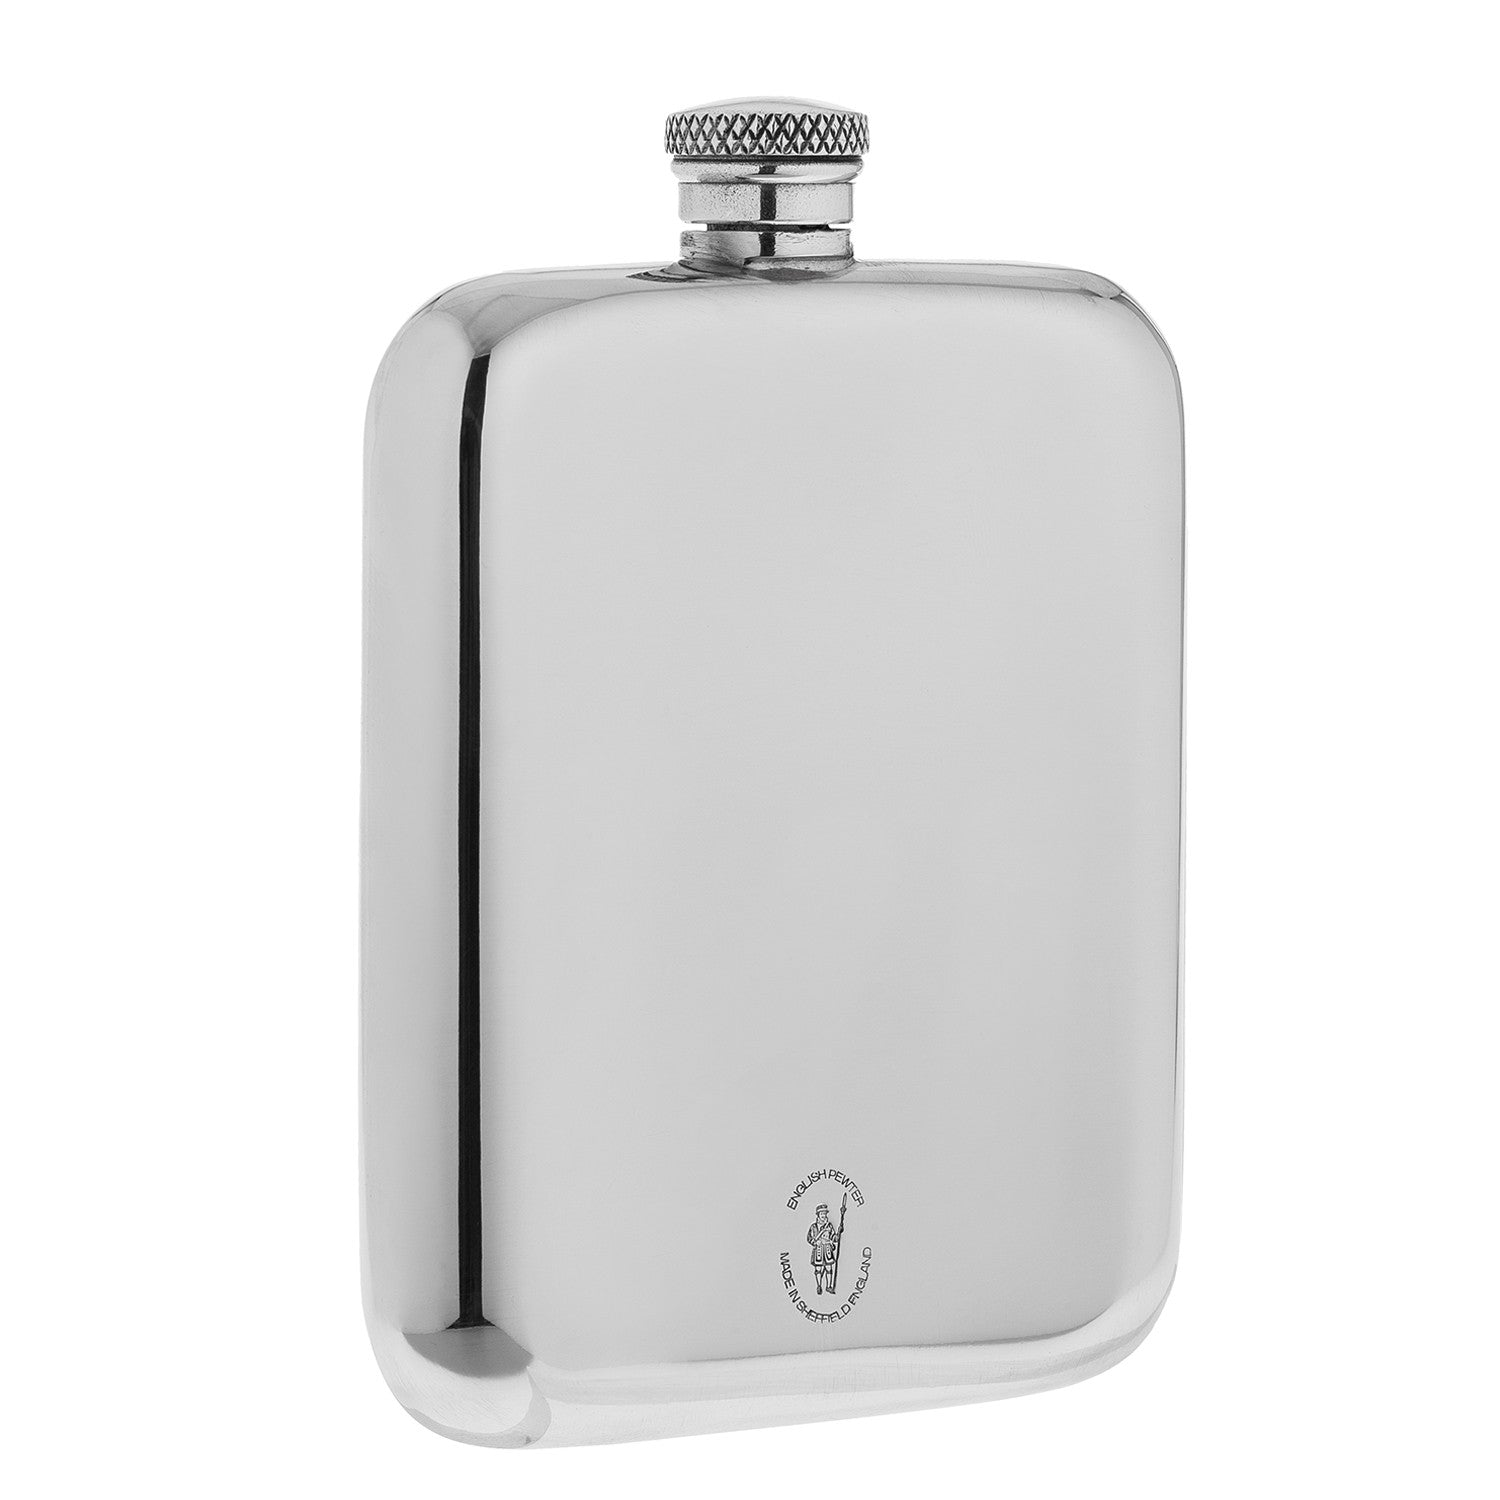 4 O'Clock Hip Flask - Pewter